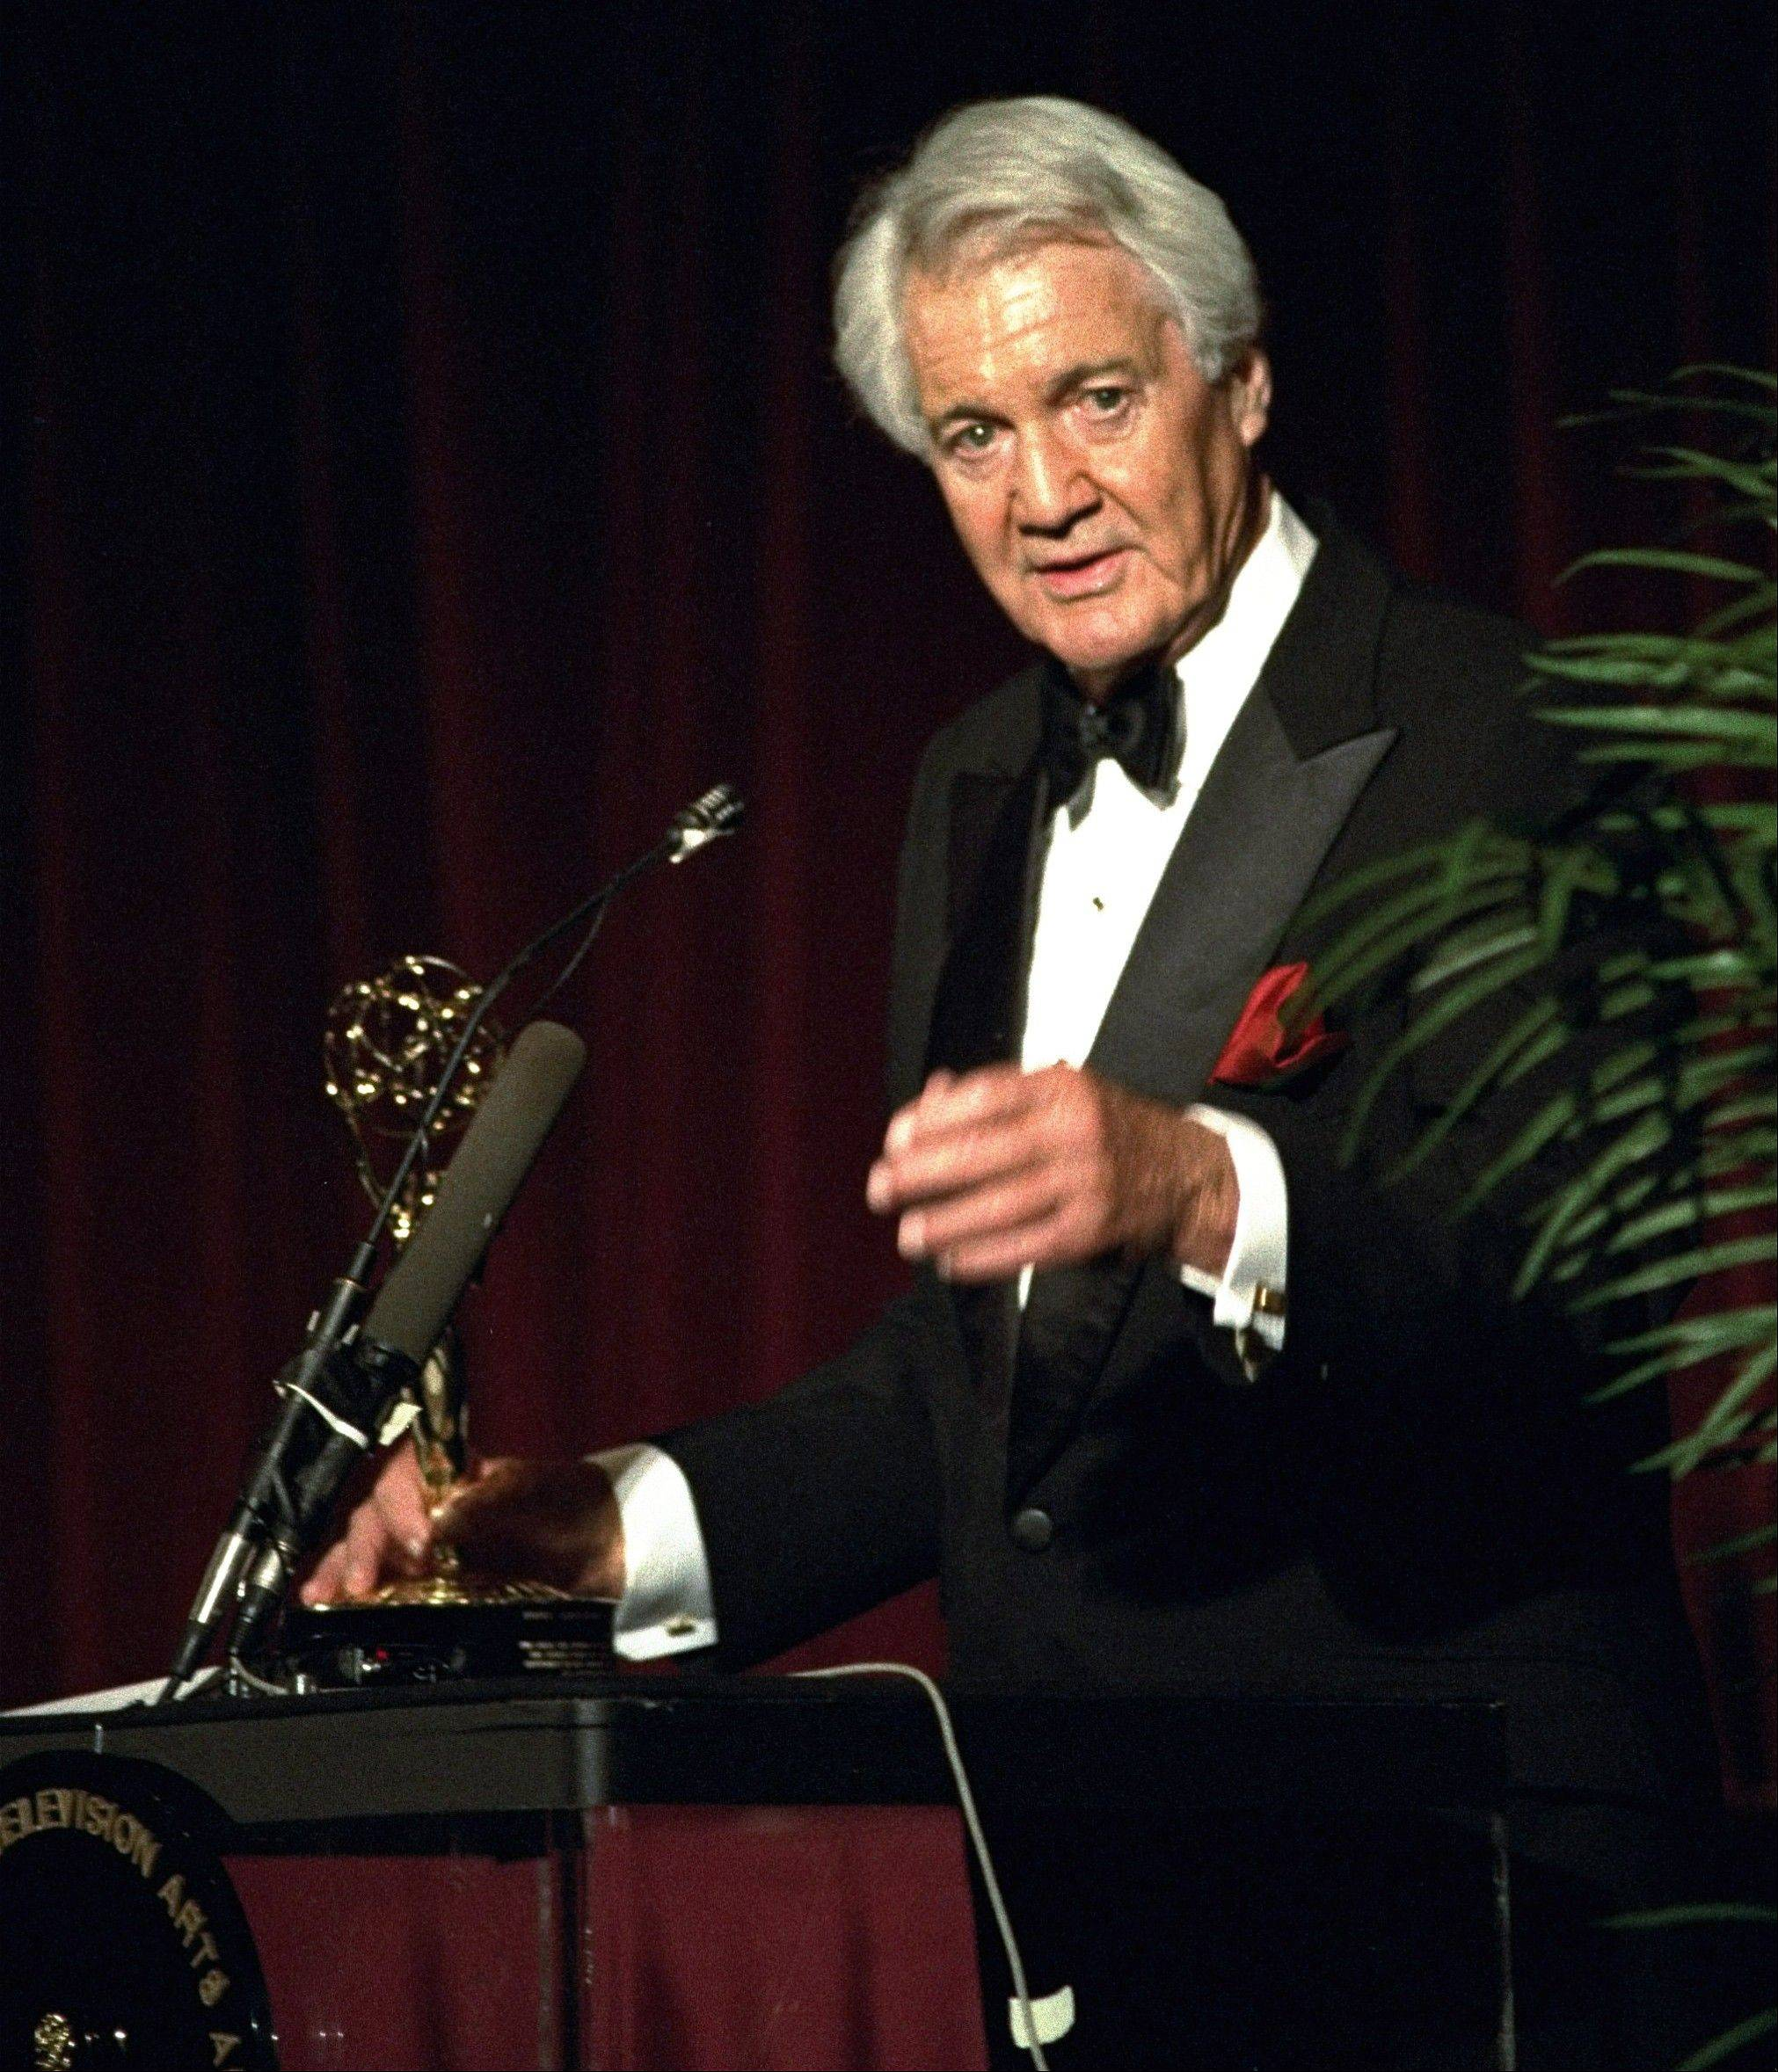 Pat Summerall, completing his 34th and final season with CBS, receives an award for lifetime achievement.